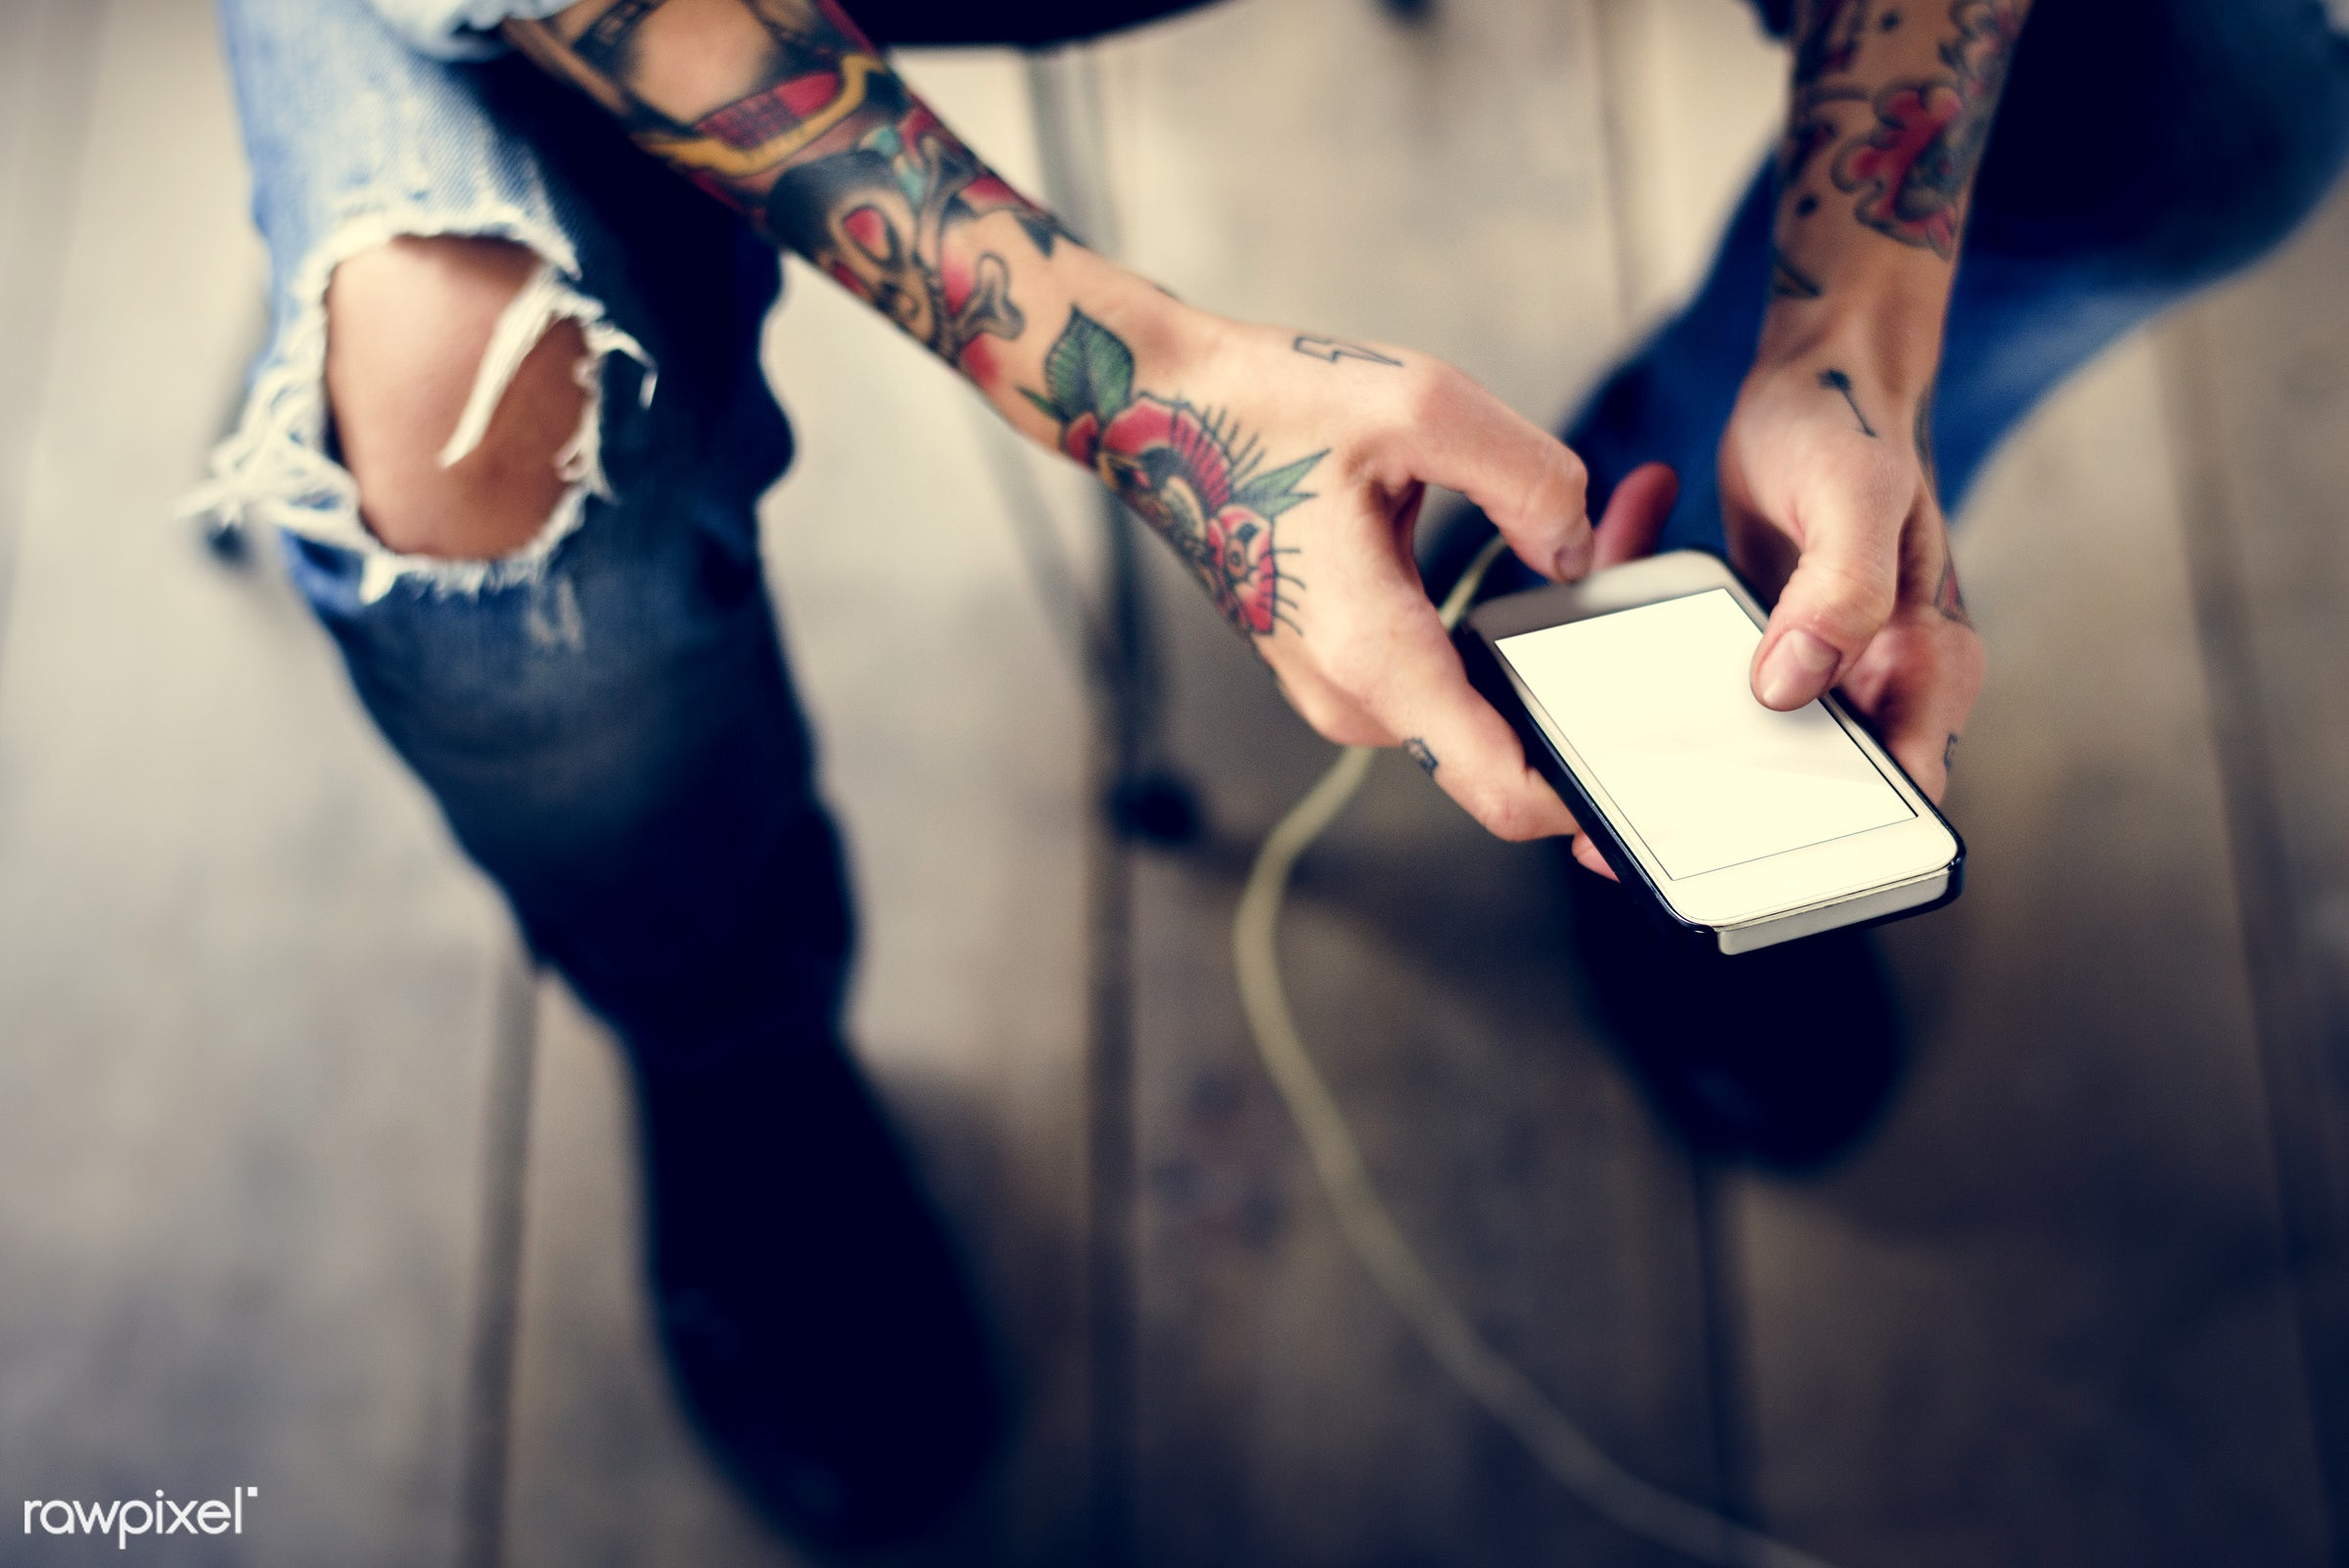 detail, person, phone, using, technology, holding, show, people, caucasian, break, woman, cellphone, empty, tattoo, screen,...